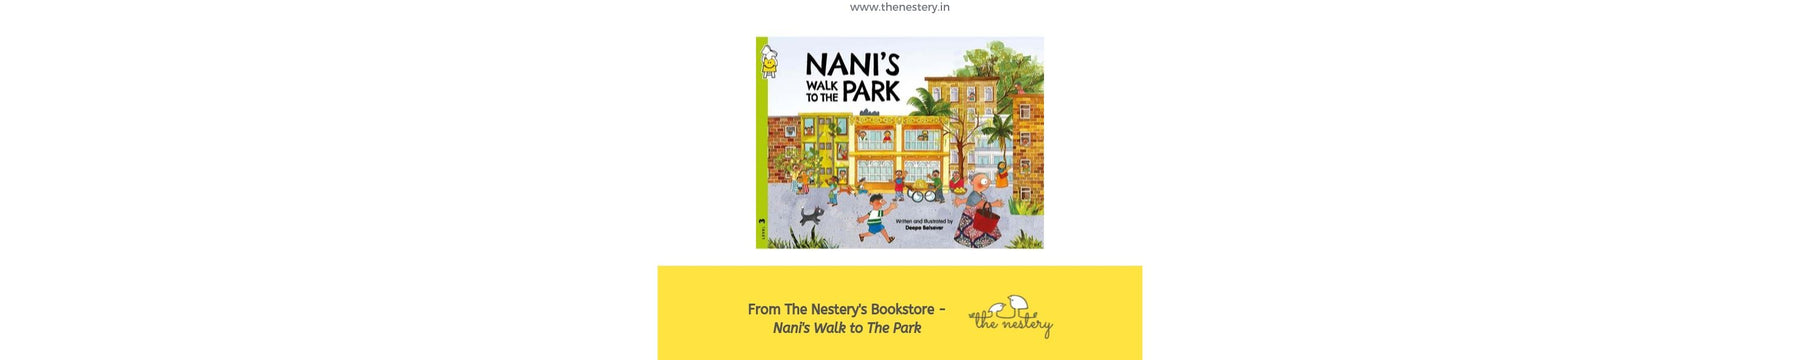 Book Review - Nani's Walk to The Park